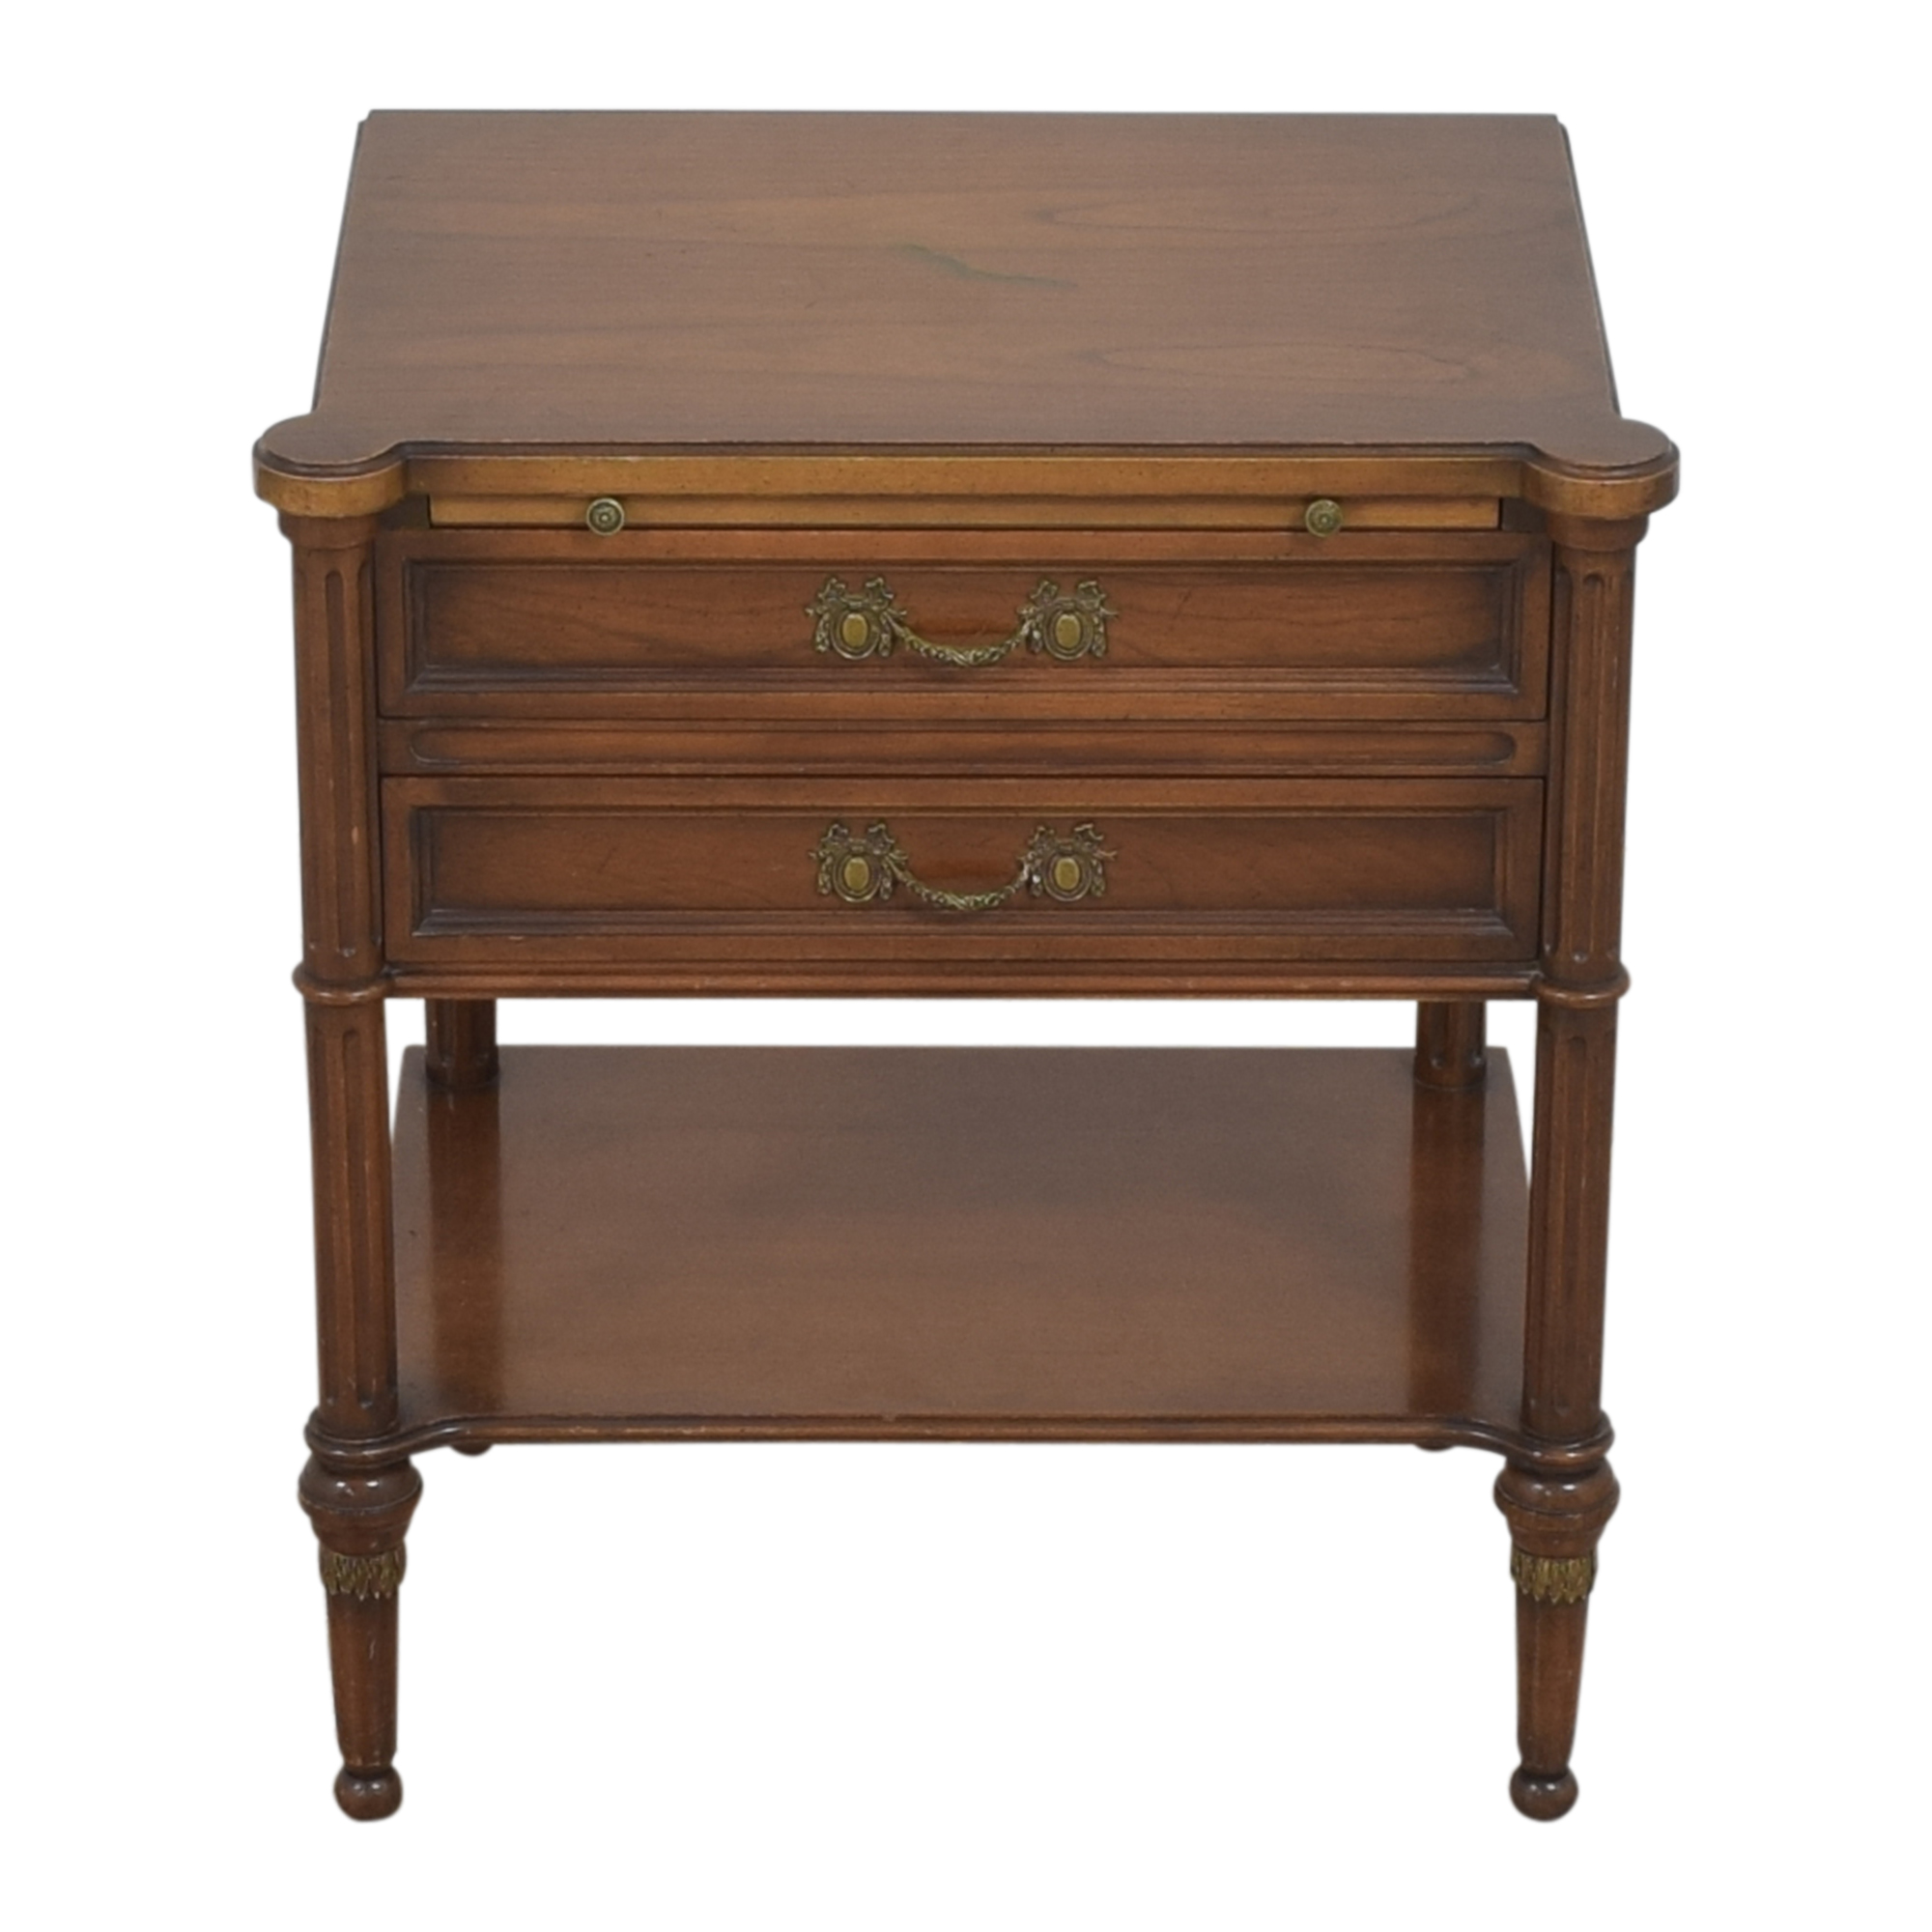 Two Drawer End Table with Desk Extension / Tables